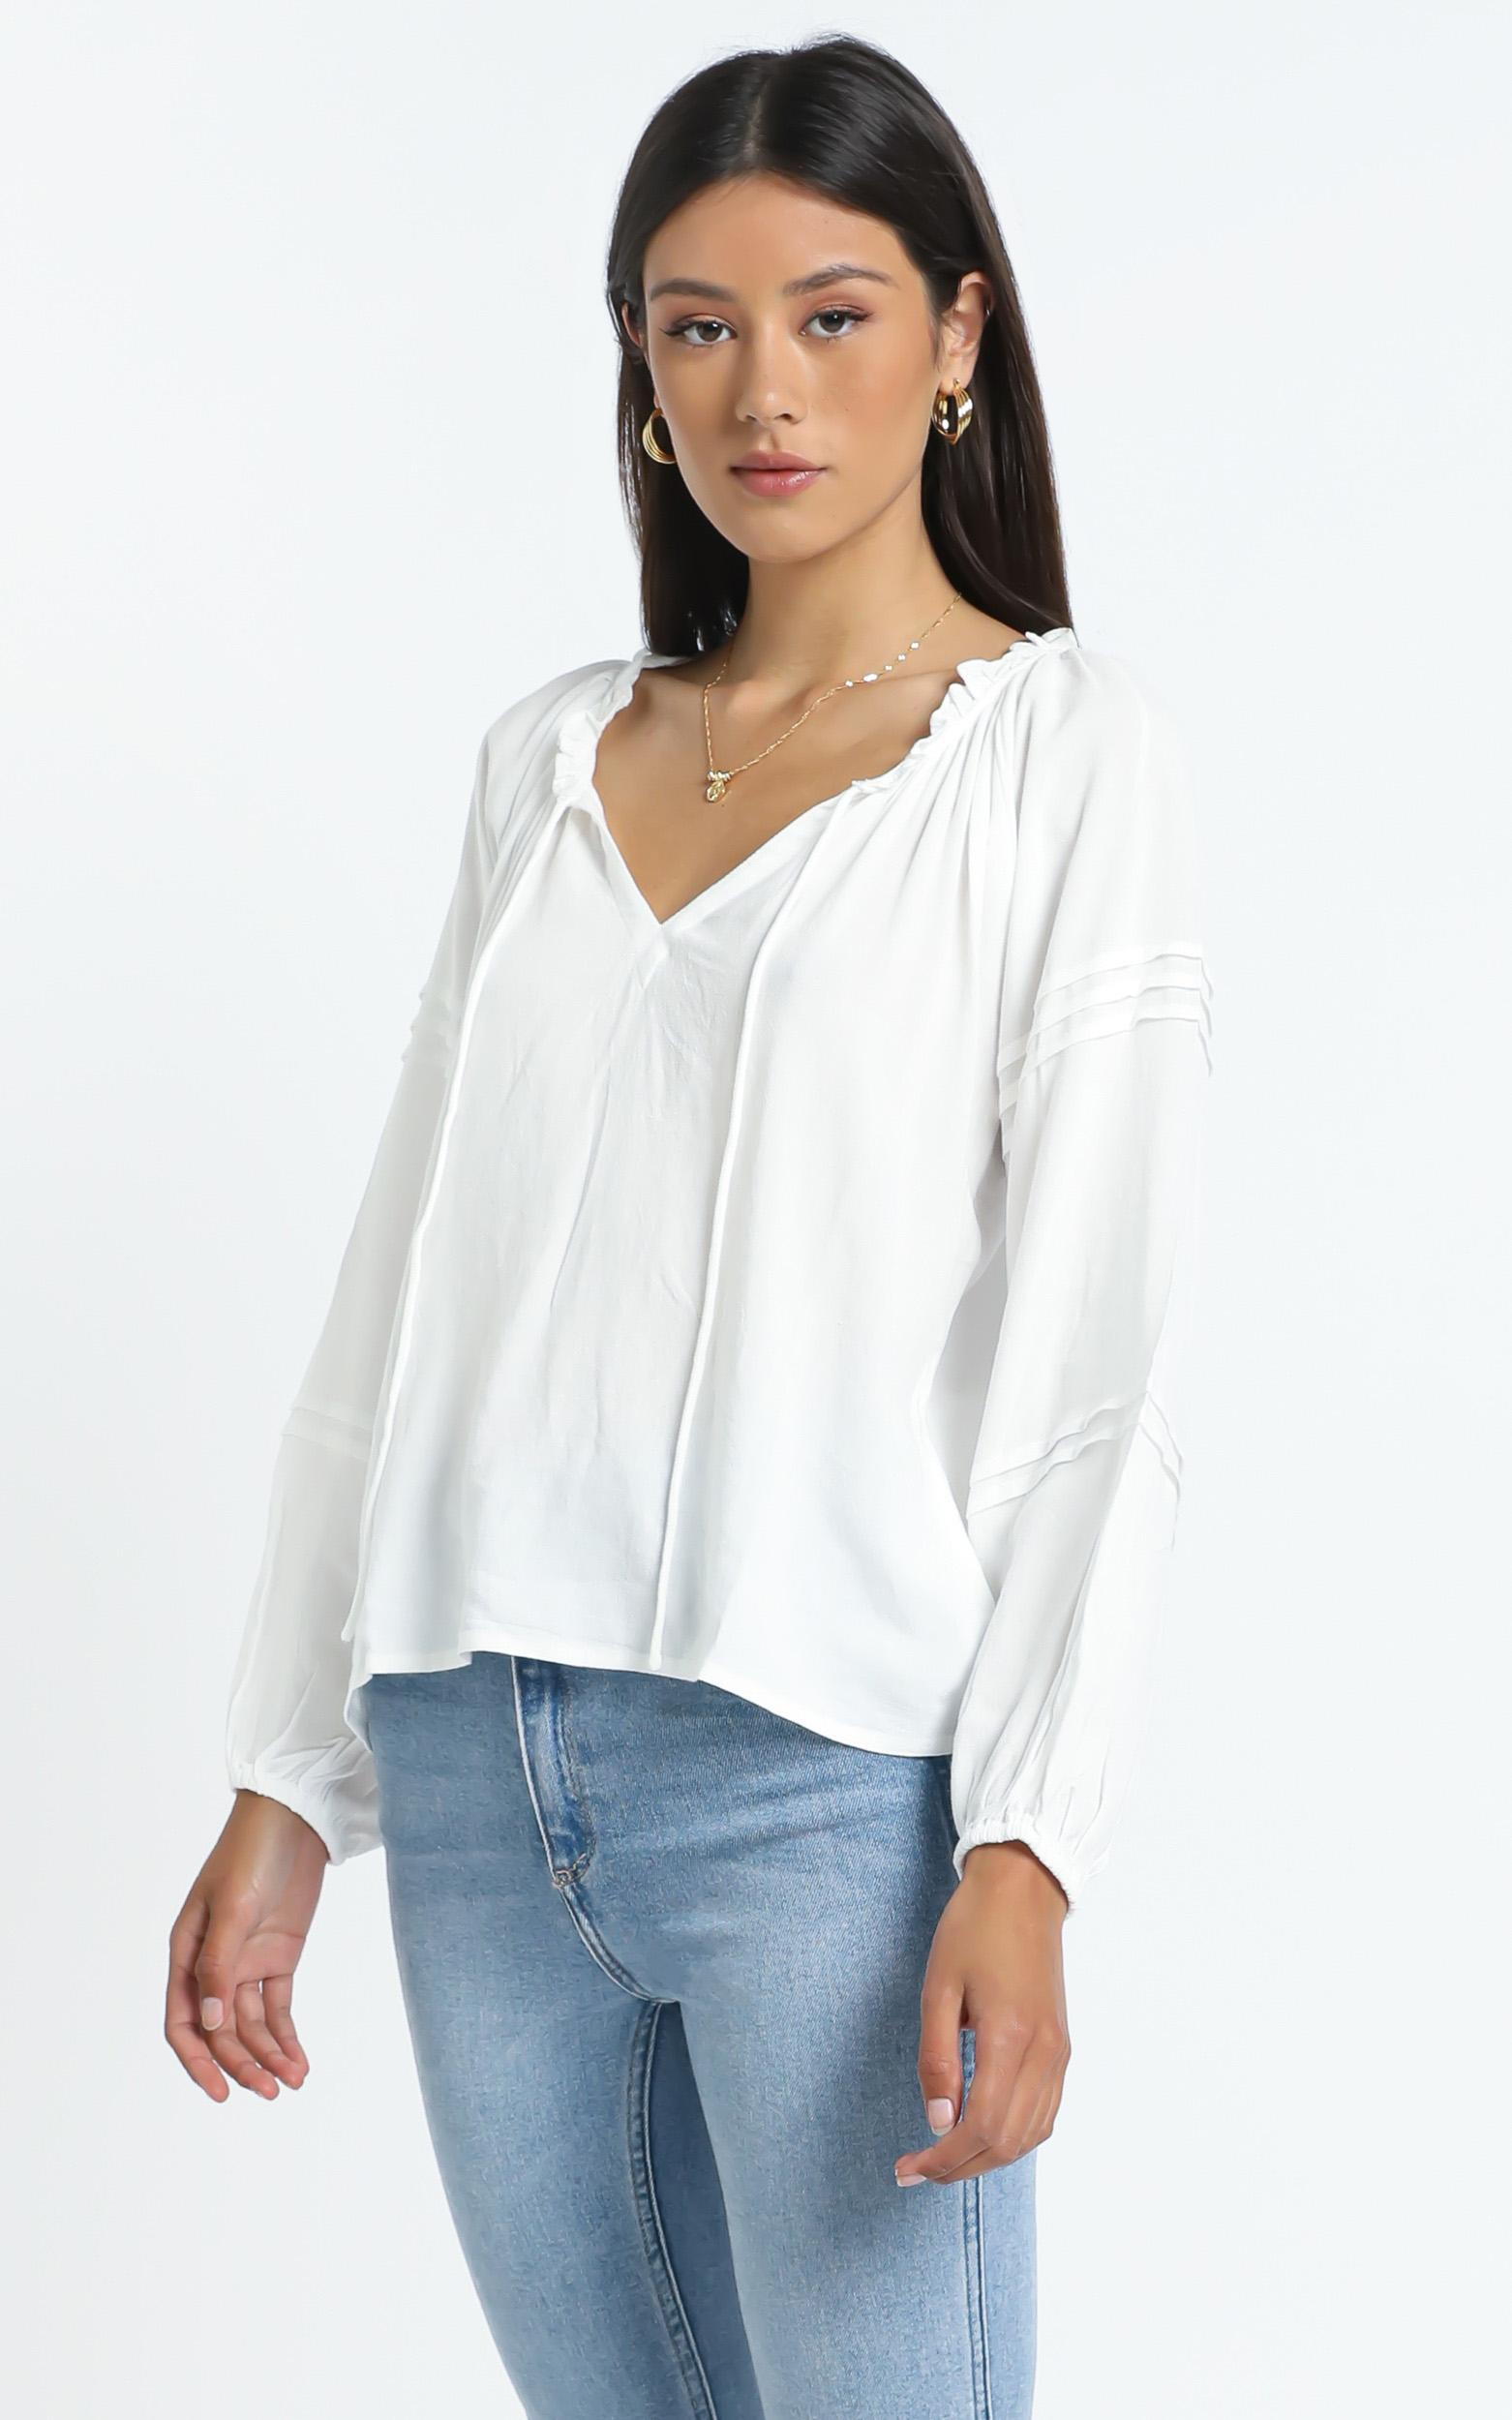 Allyce Top in White - 12 (L), White, hi-res image number null